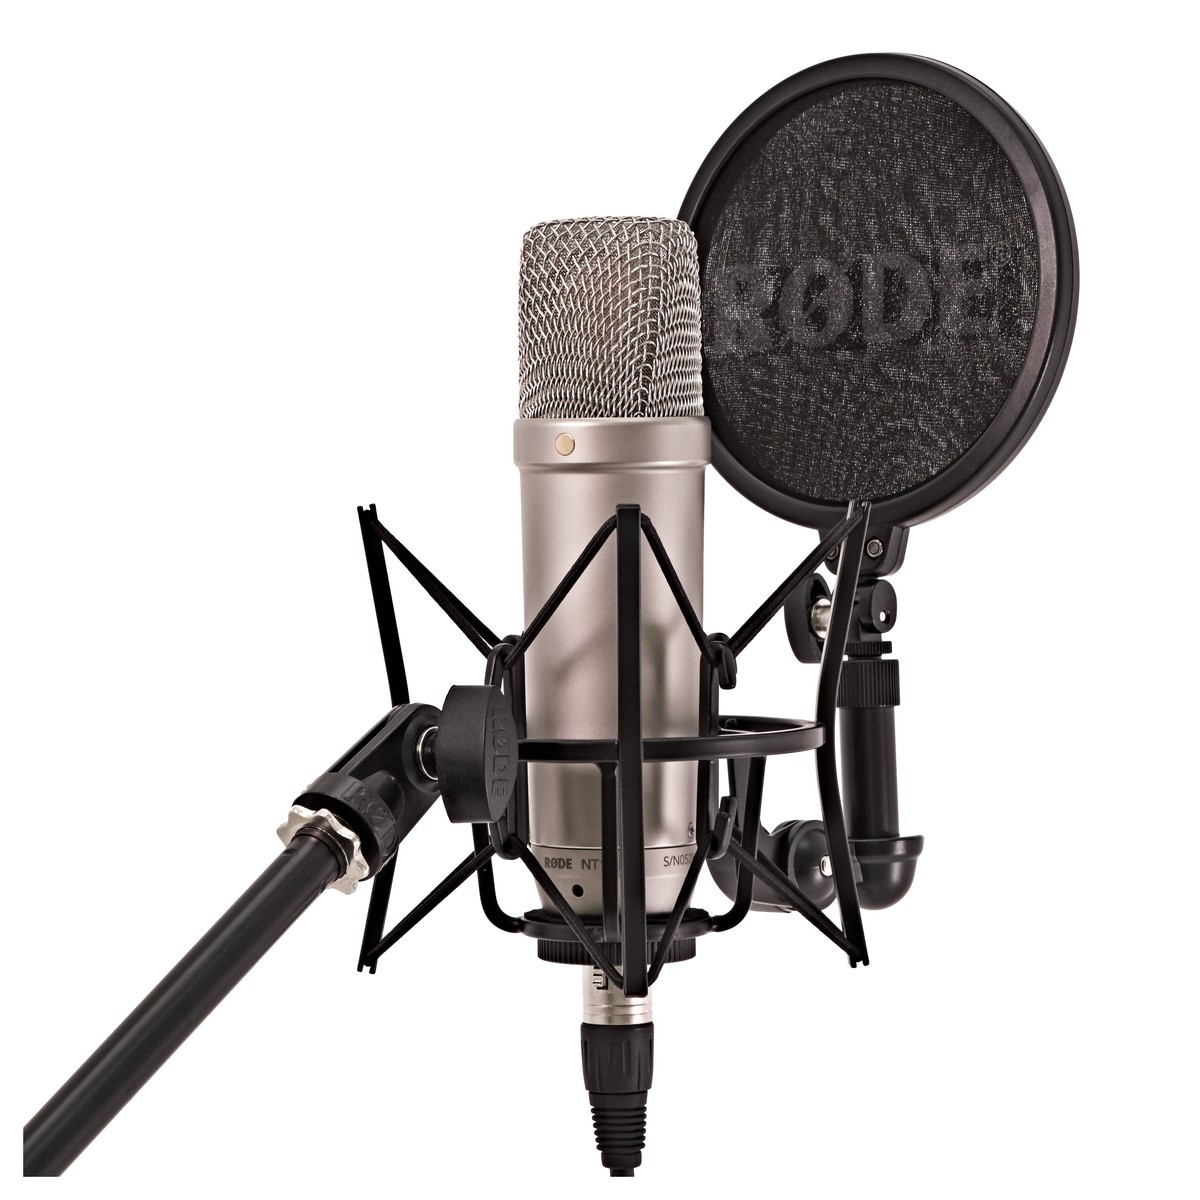 mic-thu-am-rode-nt1a-2